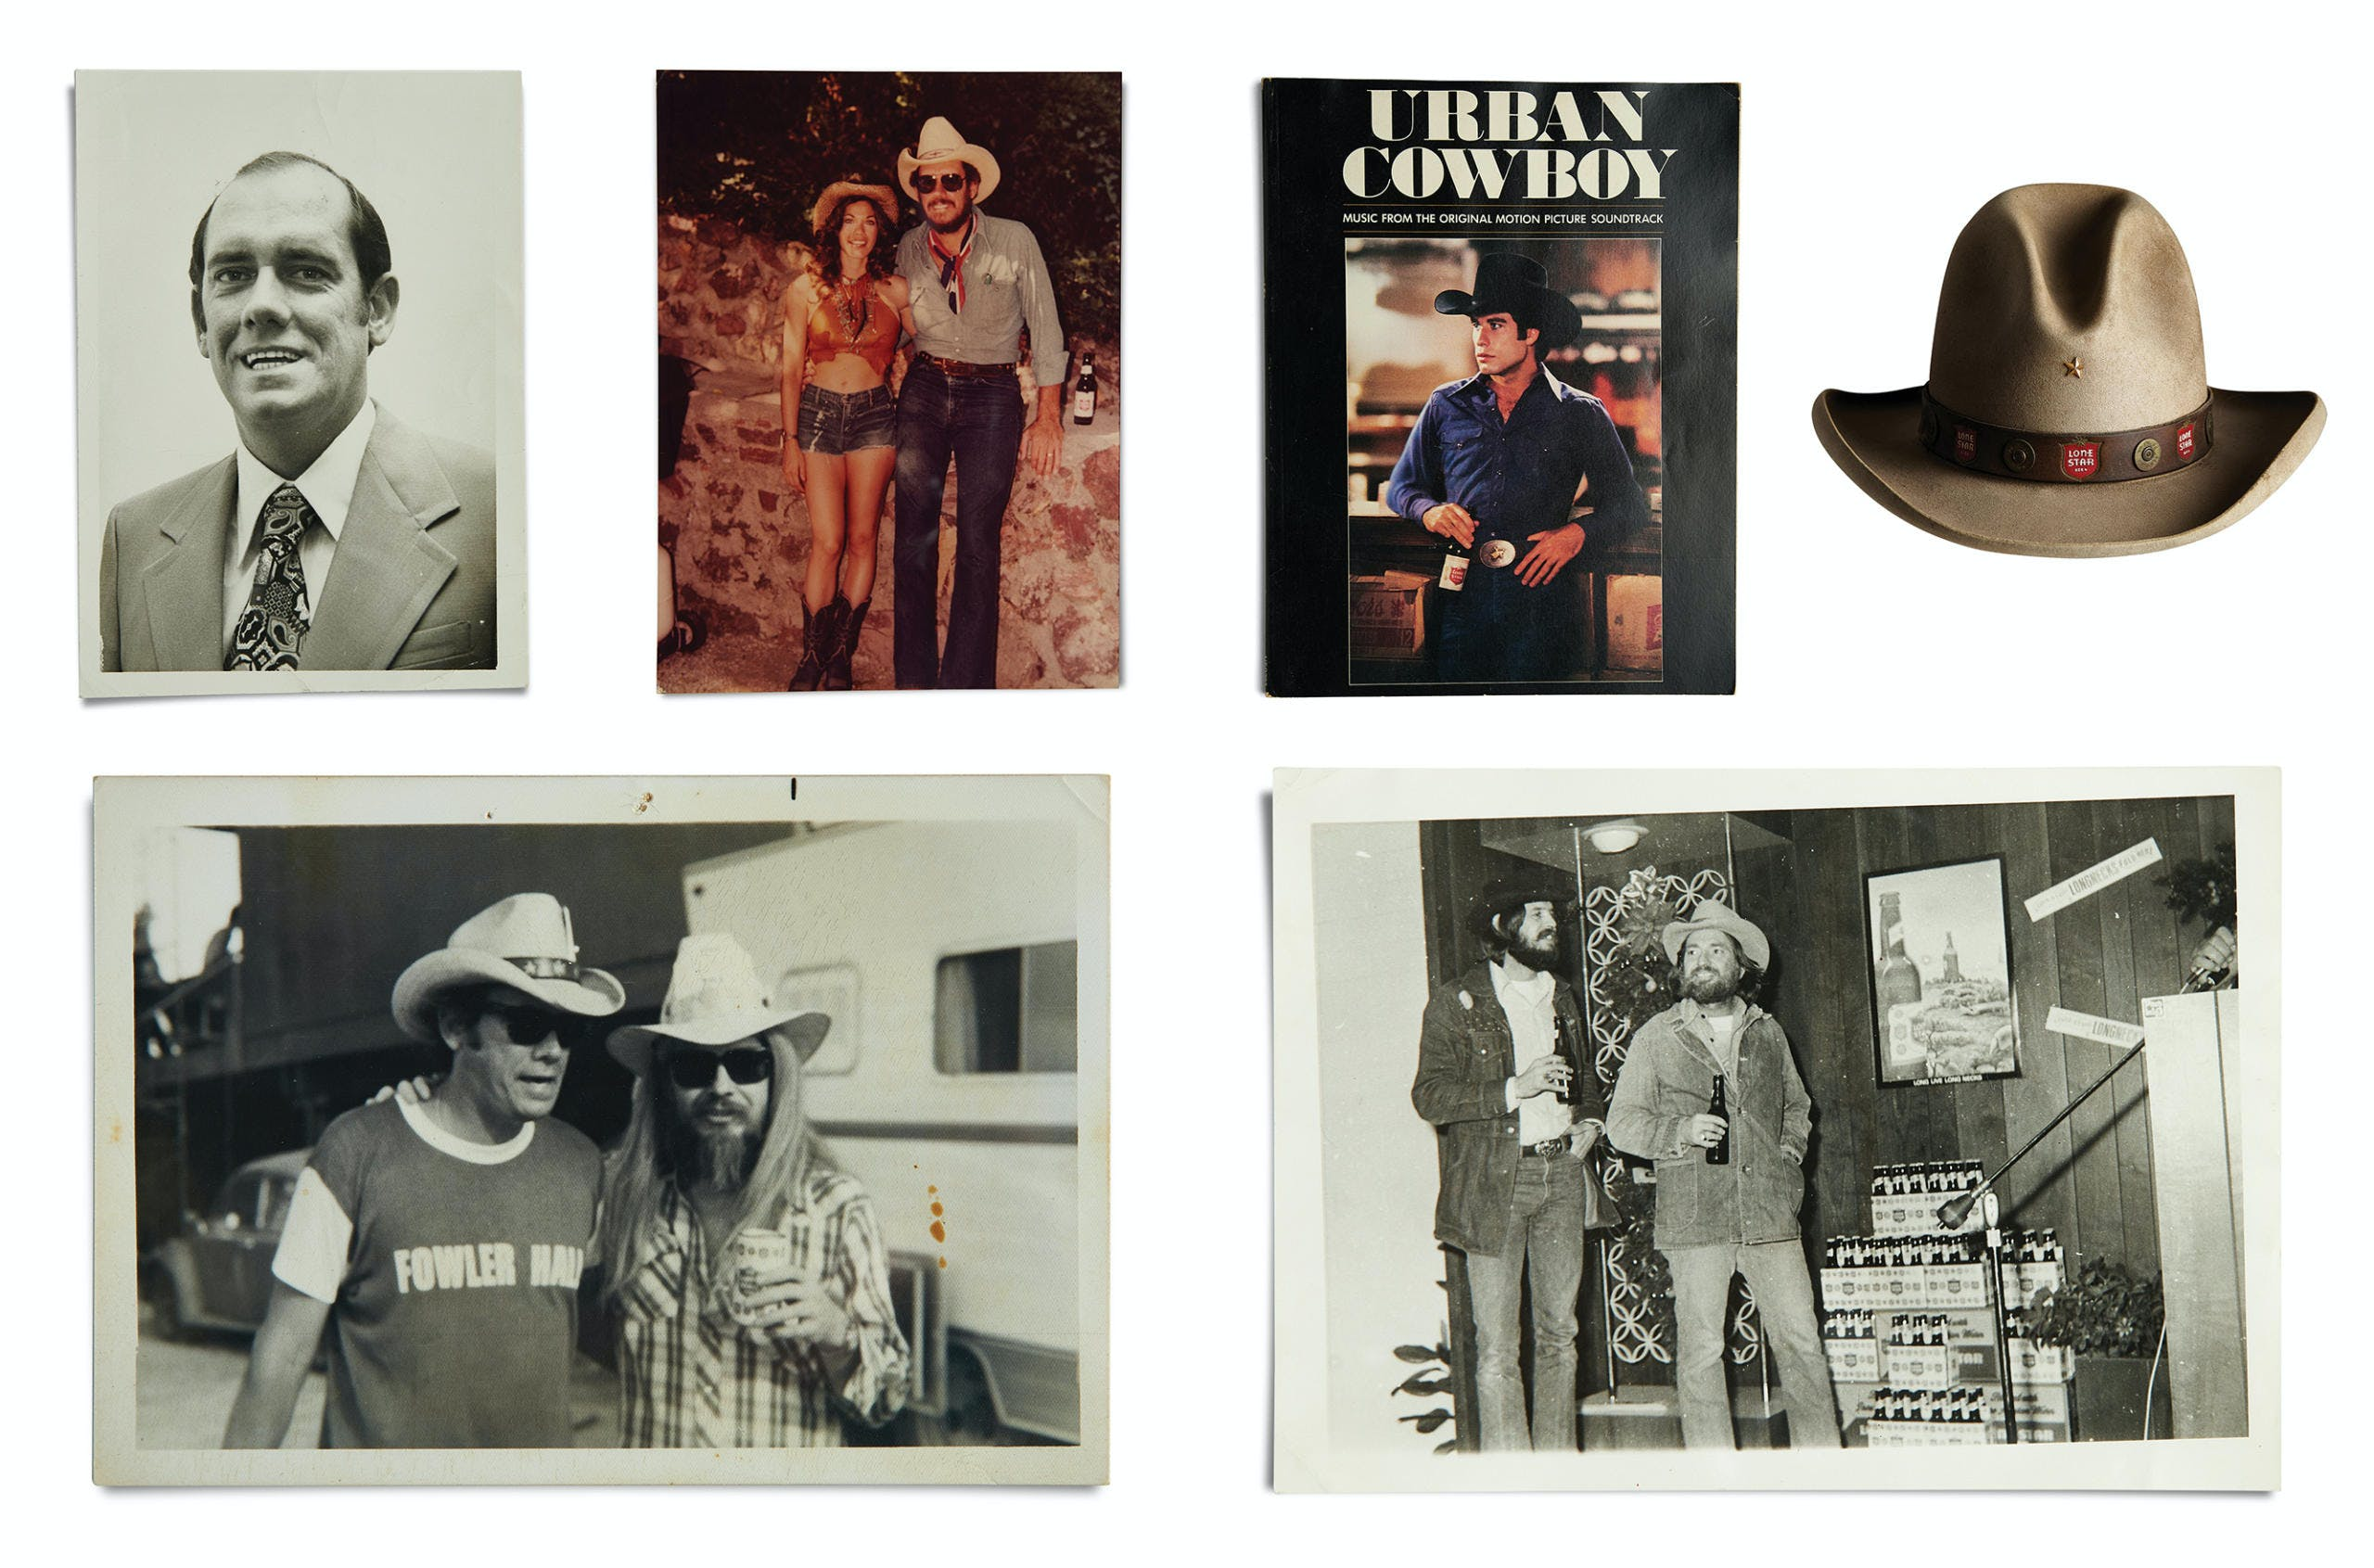 Left to right: Retzloff in 1973 as a district manager; Retzloff photographed six years later with Playboy model Barbi Benton; an Urban Cowboy songbook; the Lone Star Dude hat designed by Manny Gammage; Retzloff and Leon Russell at Willie's picnic in 1974; and Willie at one of several Lone Star sales meetings where he performed.